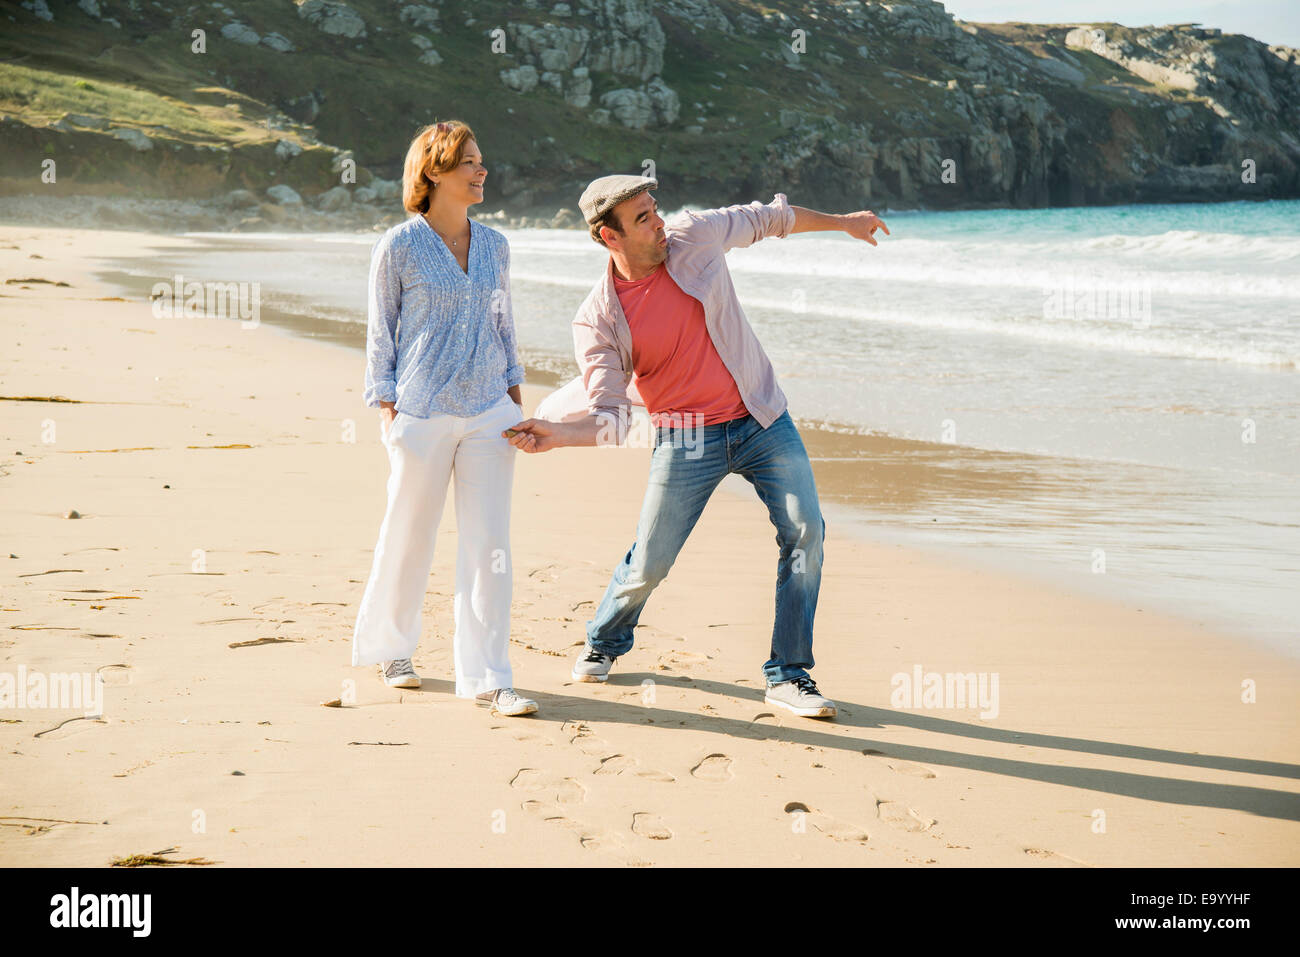 Mature couple throwing pebbles out to sea, Camaret-sur-mer, Brittany, France - Stock Image